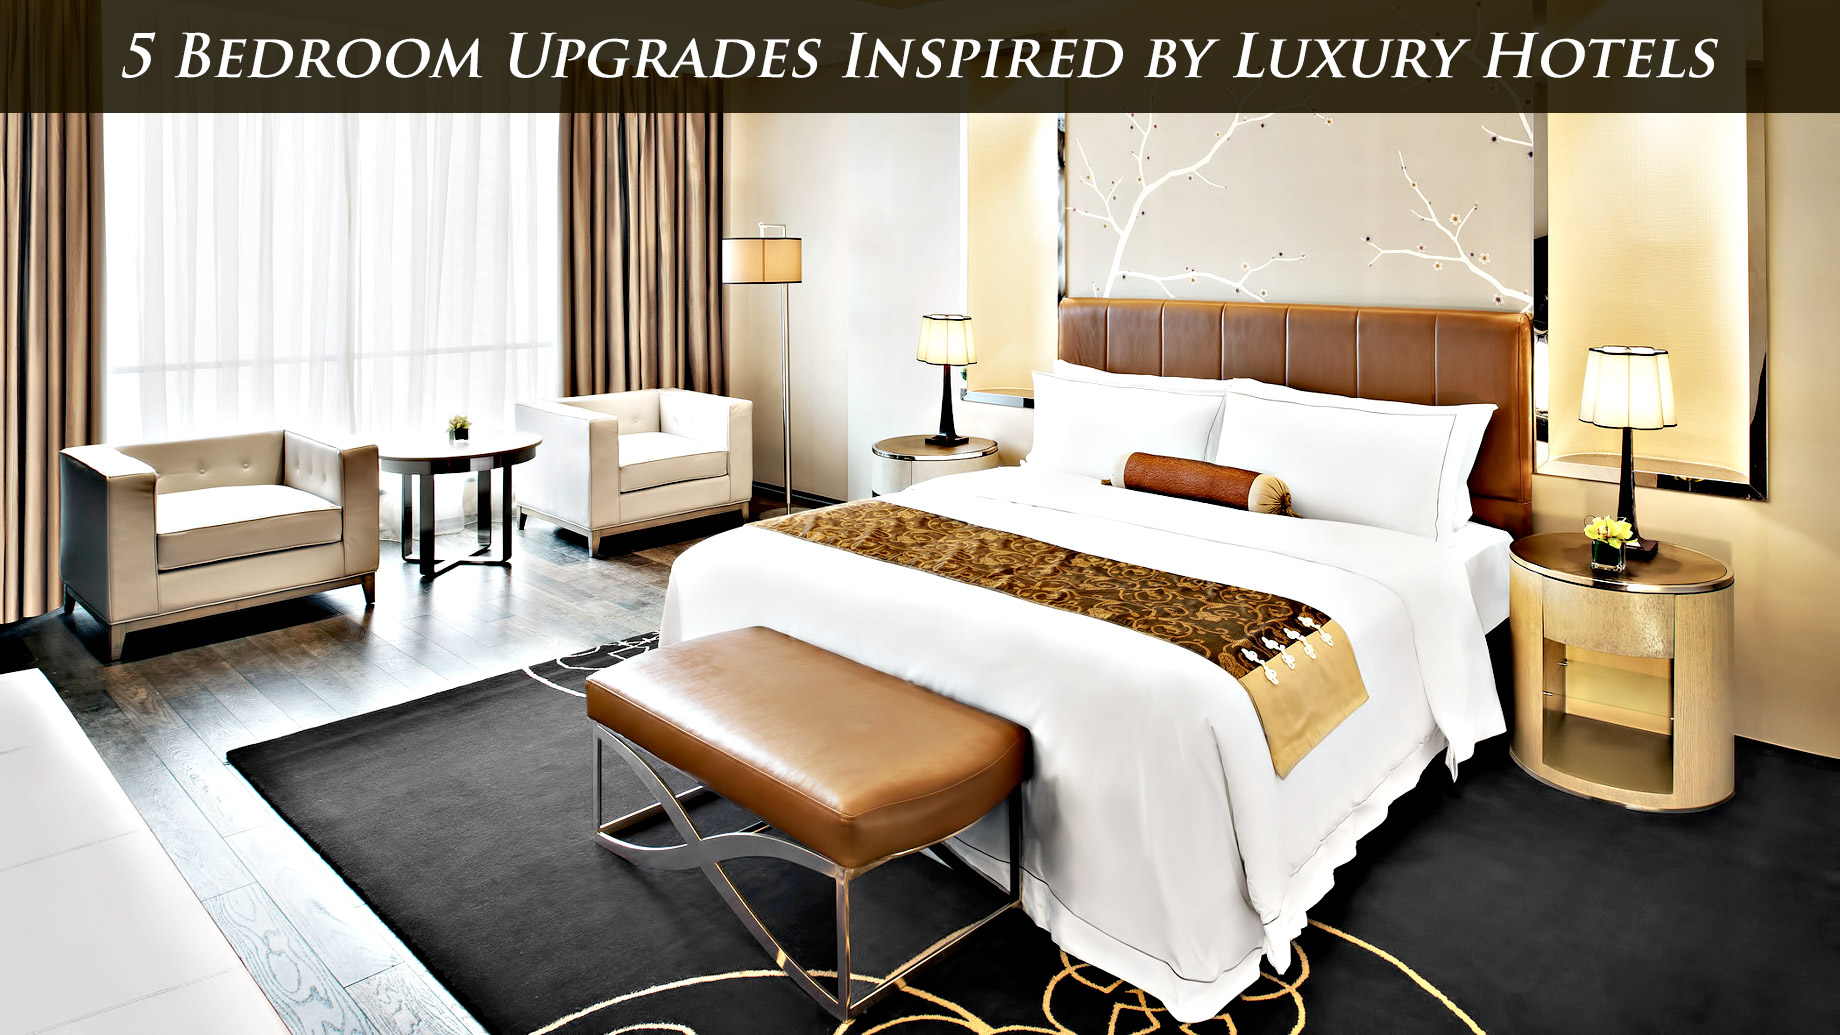 5 Bedroom Upgrades Inspired by Luxury Hotels